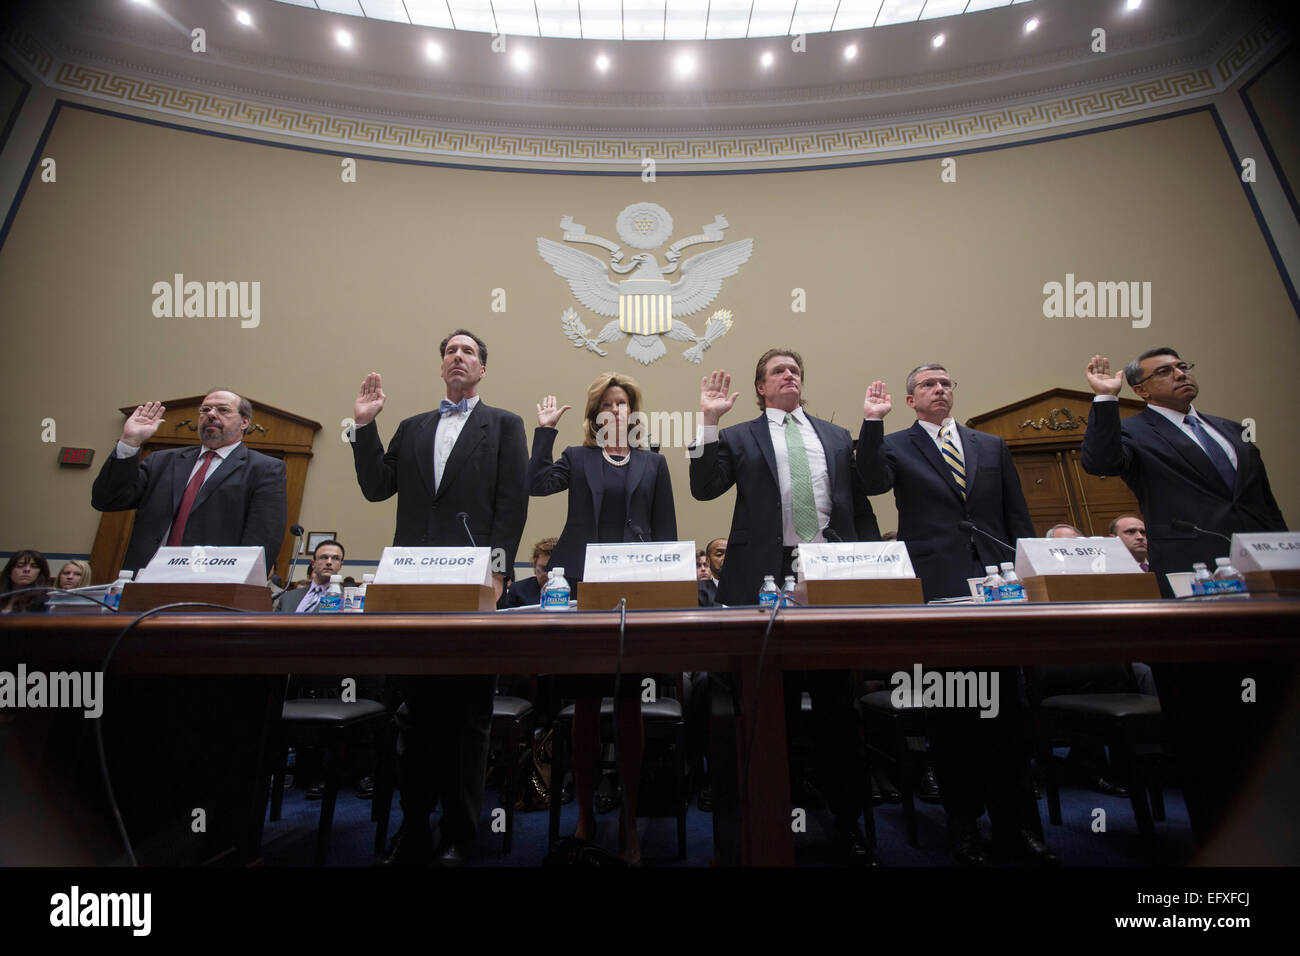 Witnesses are sworn in to testify at the House Oversight and Government Reform Committee hearing on the IRS targeting - Stock Image